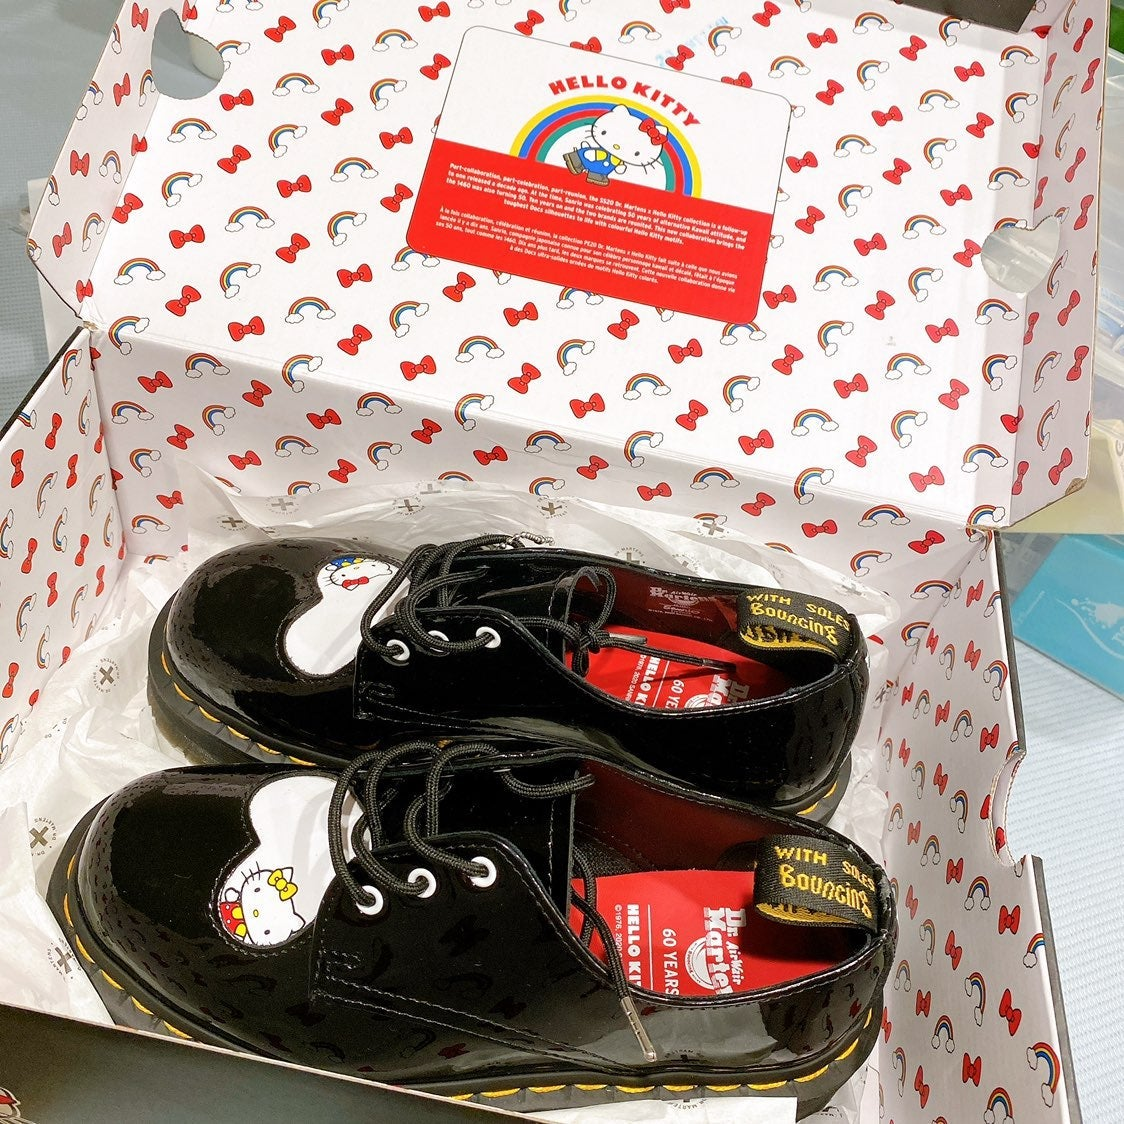 Dr. Martens 60 Years Hello Kitty Limited